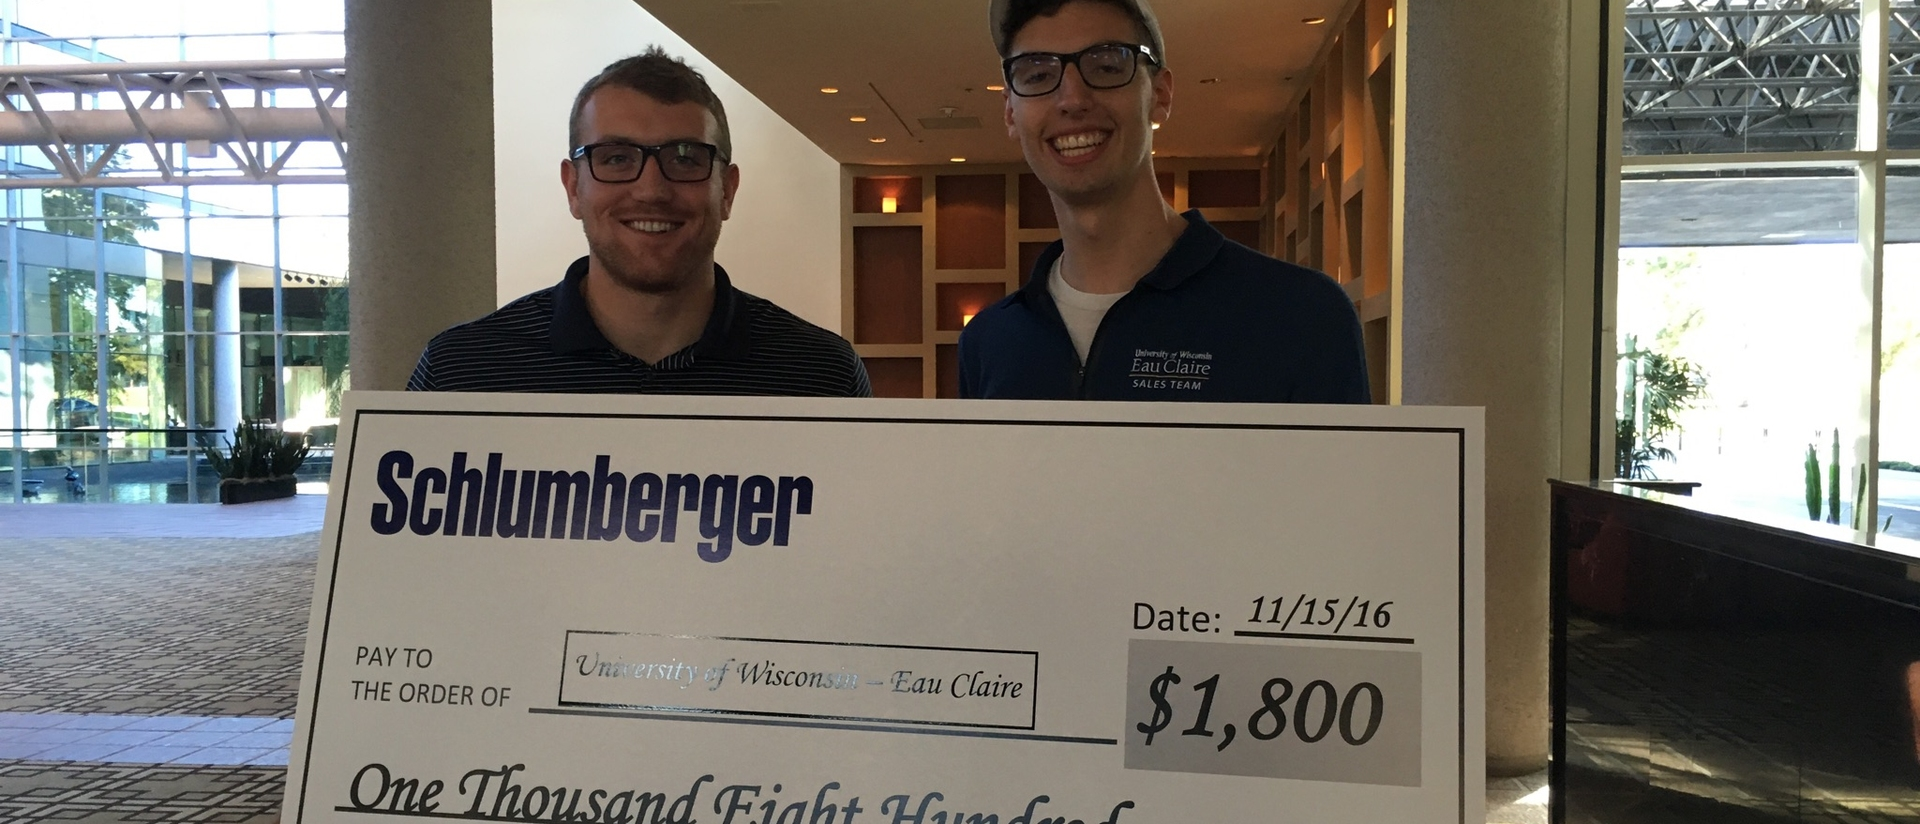 Schlumberger check with students